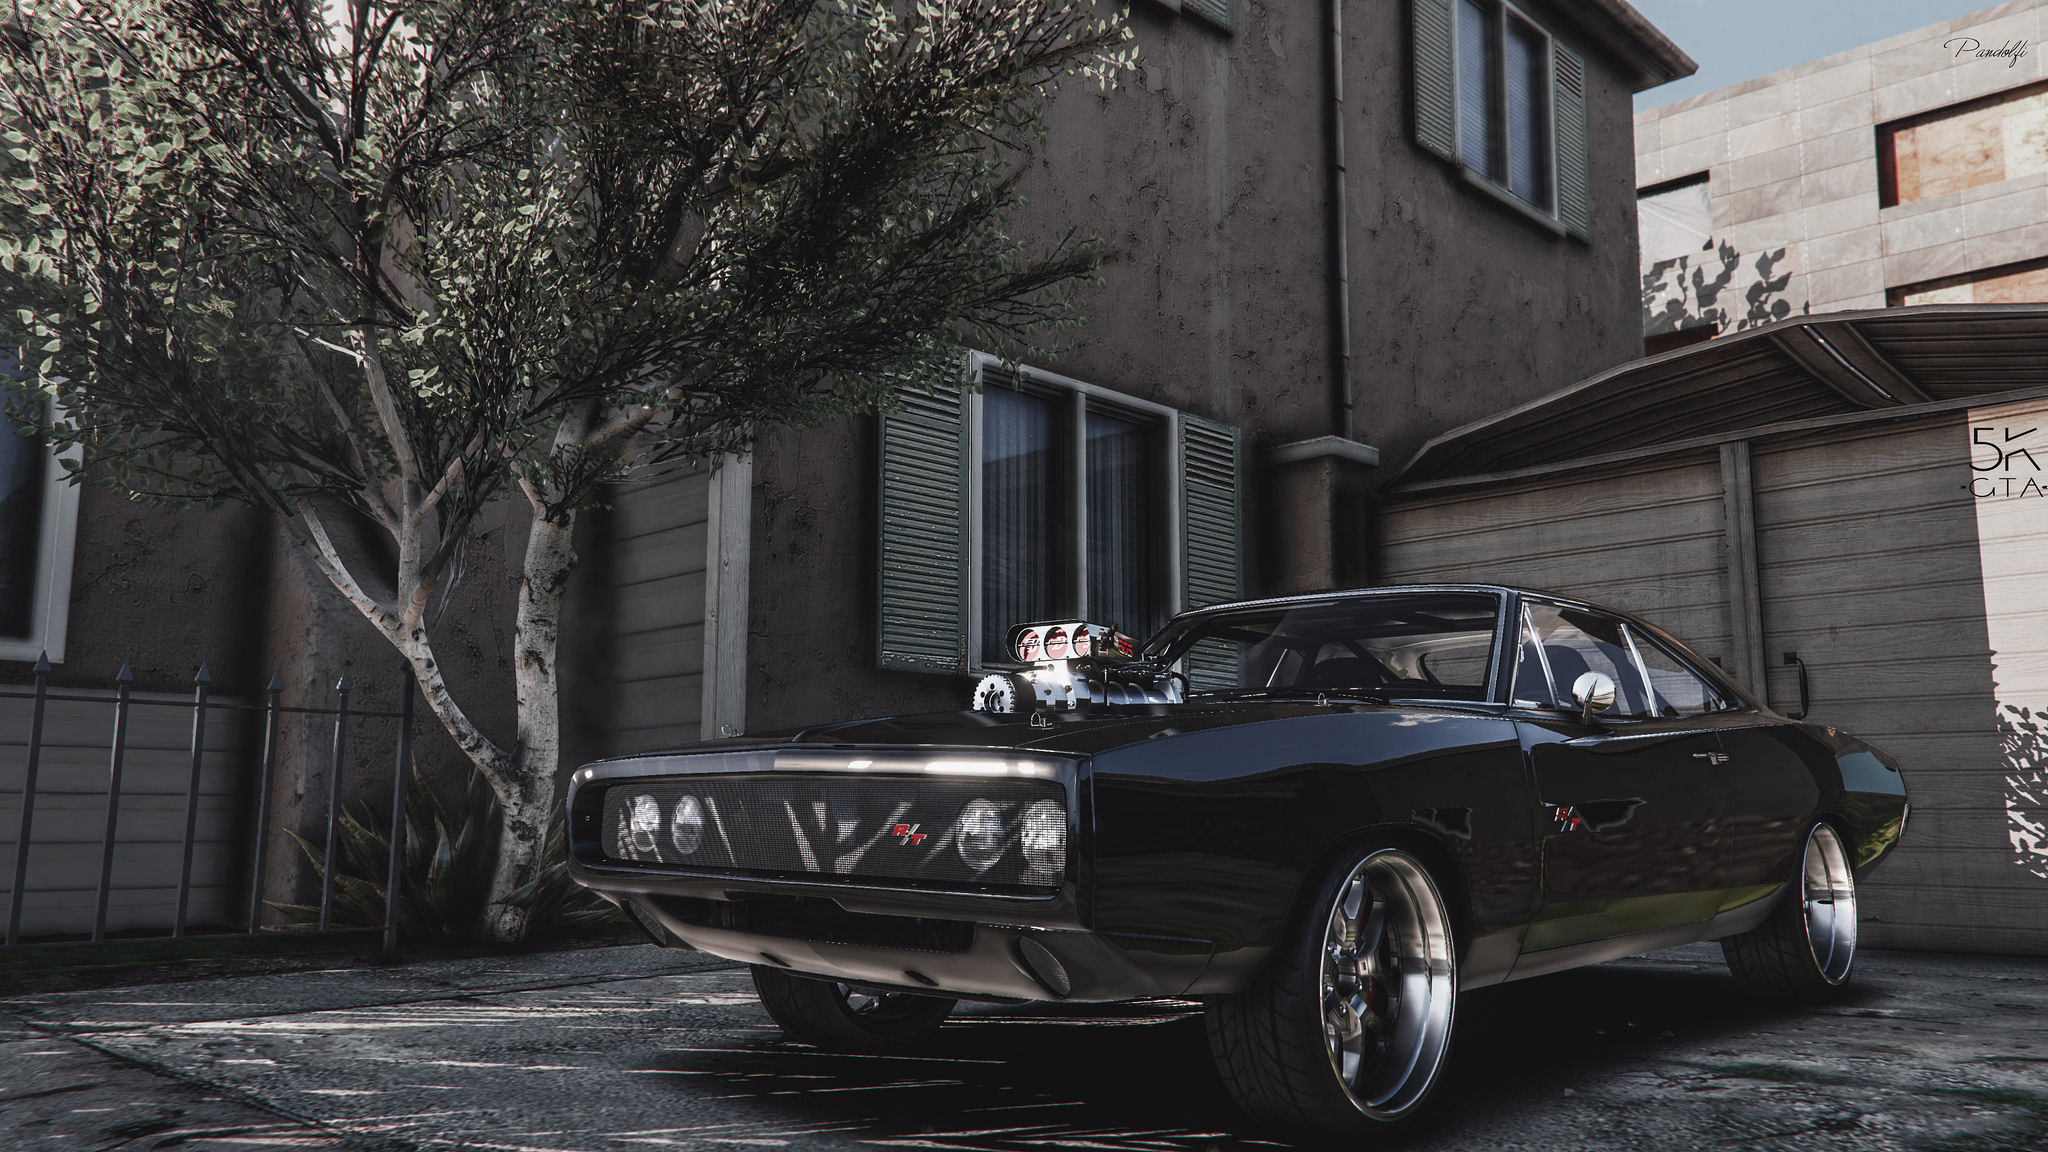 dom s 1970 dodge charger furious 7 working blower add on lods gta5 mods com dom s 1970 dodge charger furious 7